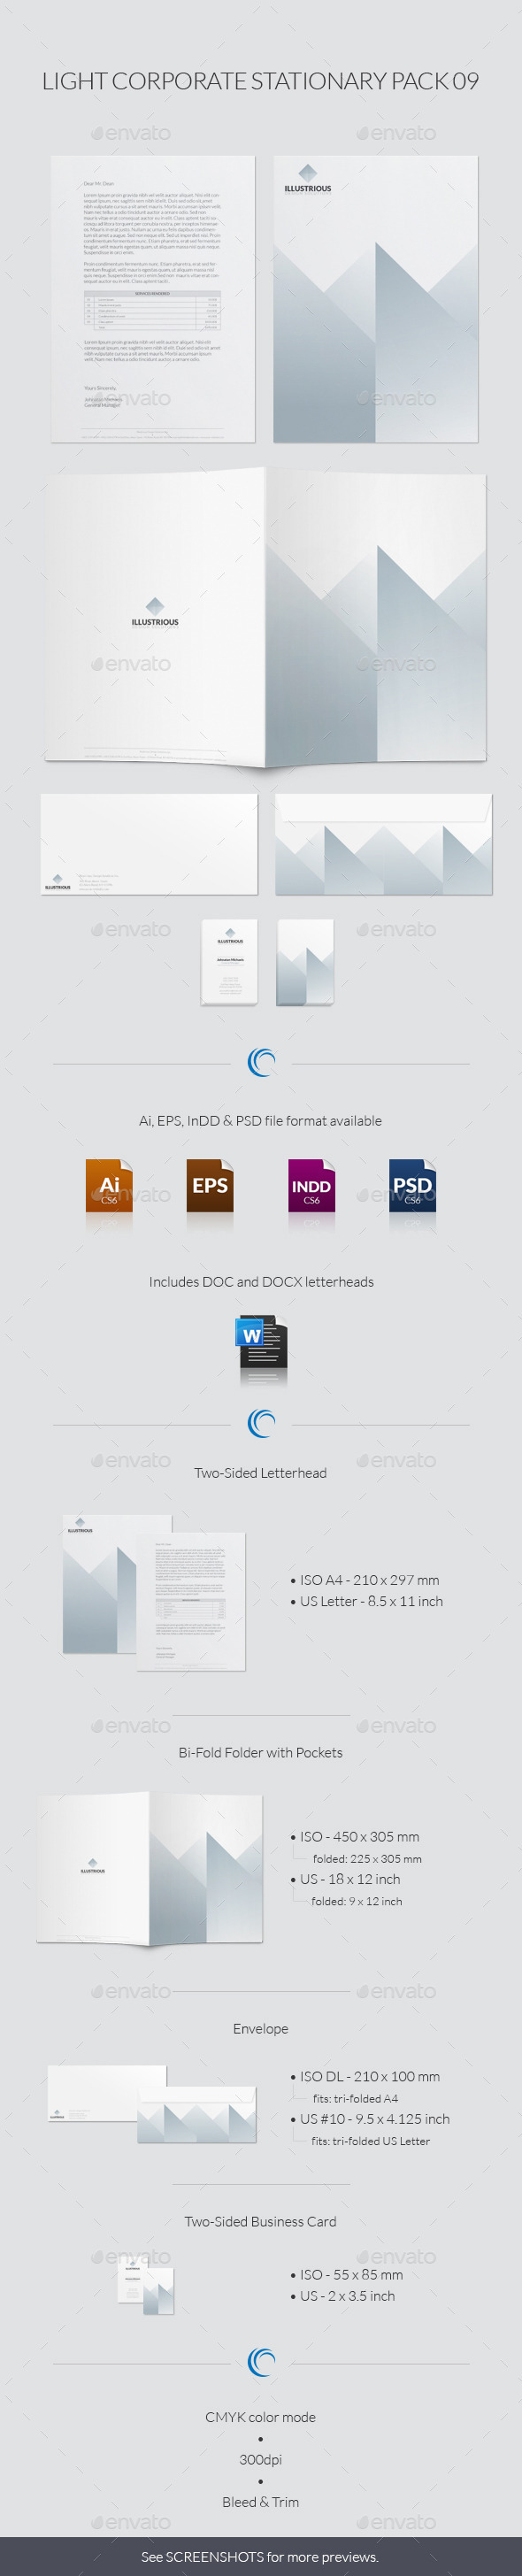 GraphicRiver Light Corporate Stationary Pack 09 9179289